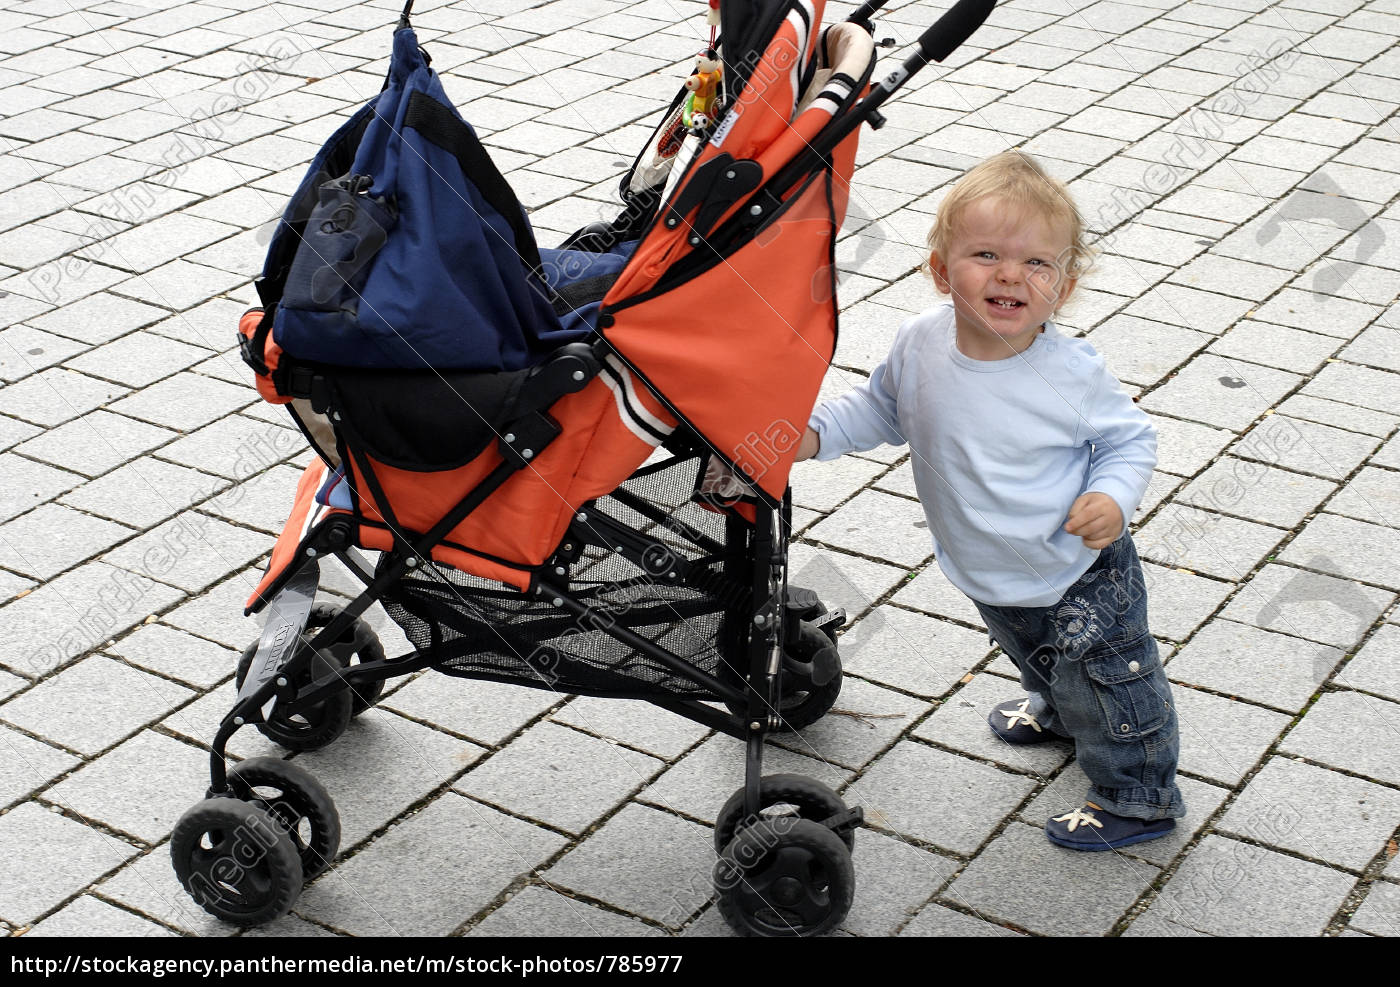 child, pushes, stroller - 785977